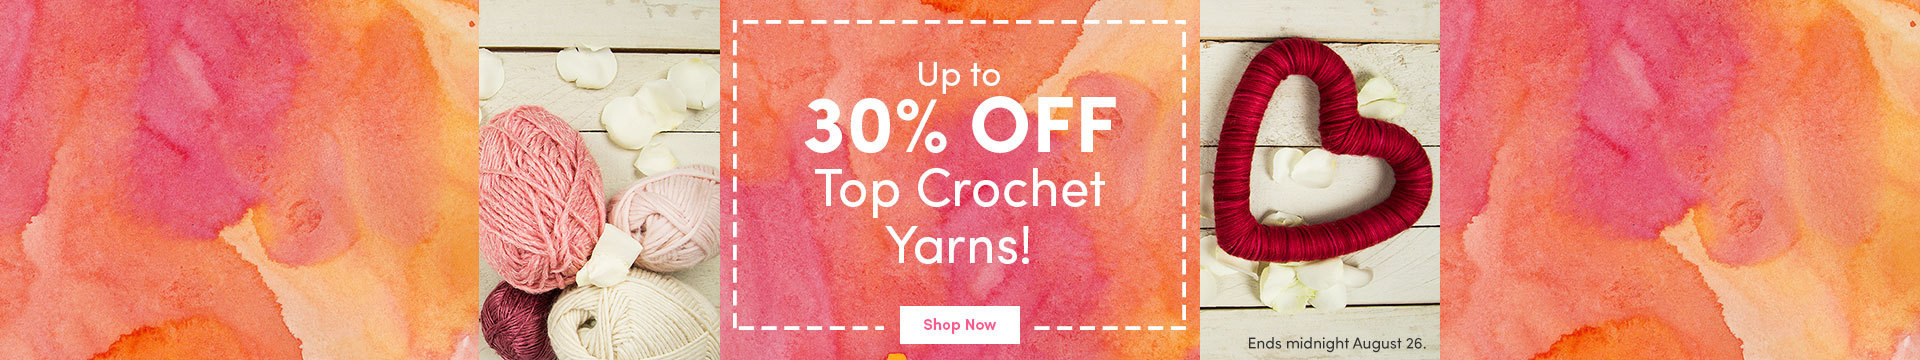 LC Marketing - Up to 30% off fave yarns Aug 17